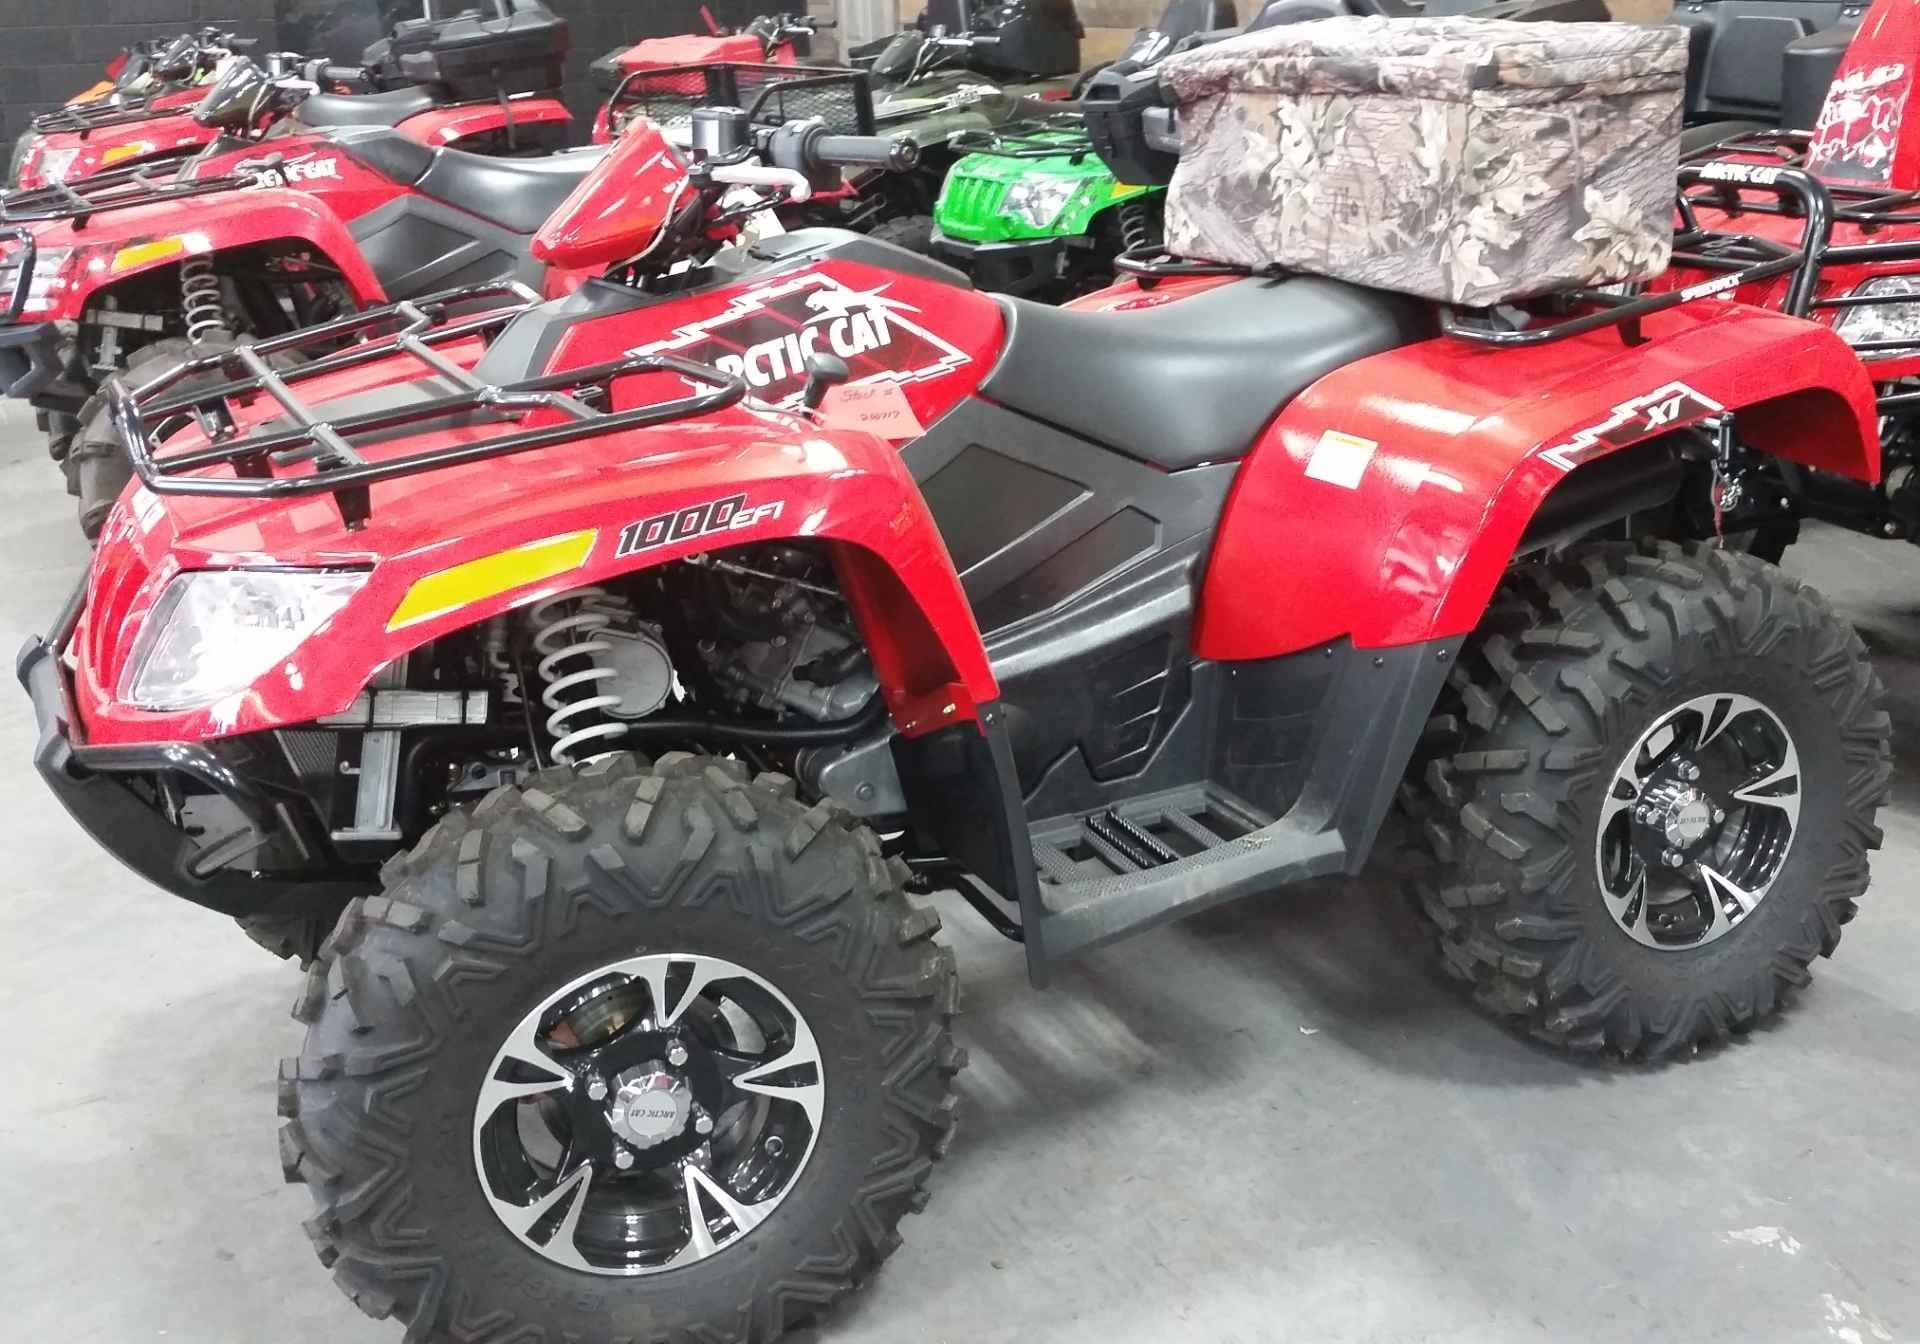 New 2015 Arctic Cat 1000 XT™ EPS ATVs For Sale in Georgia. If you ...